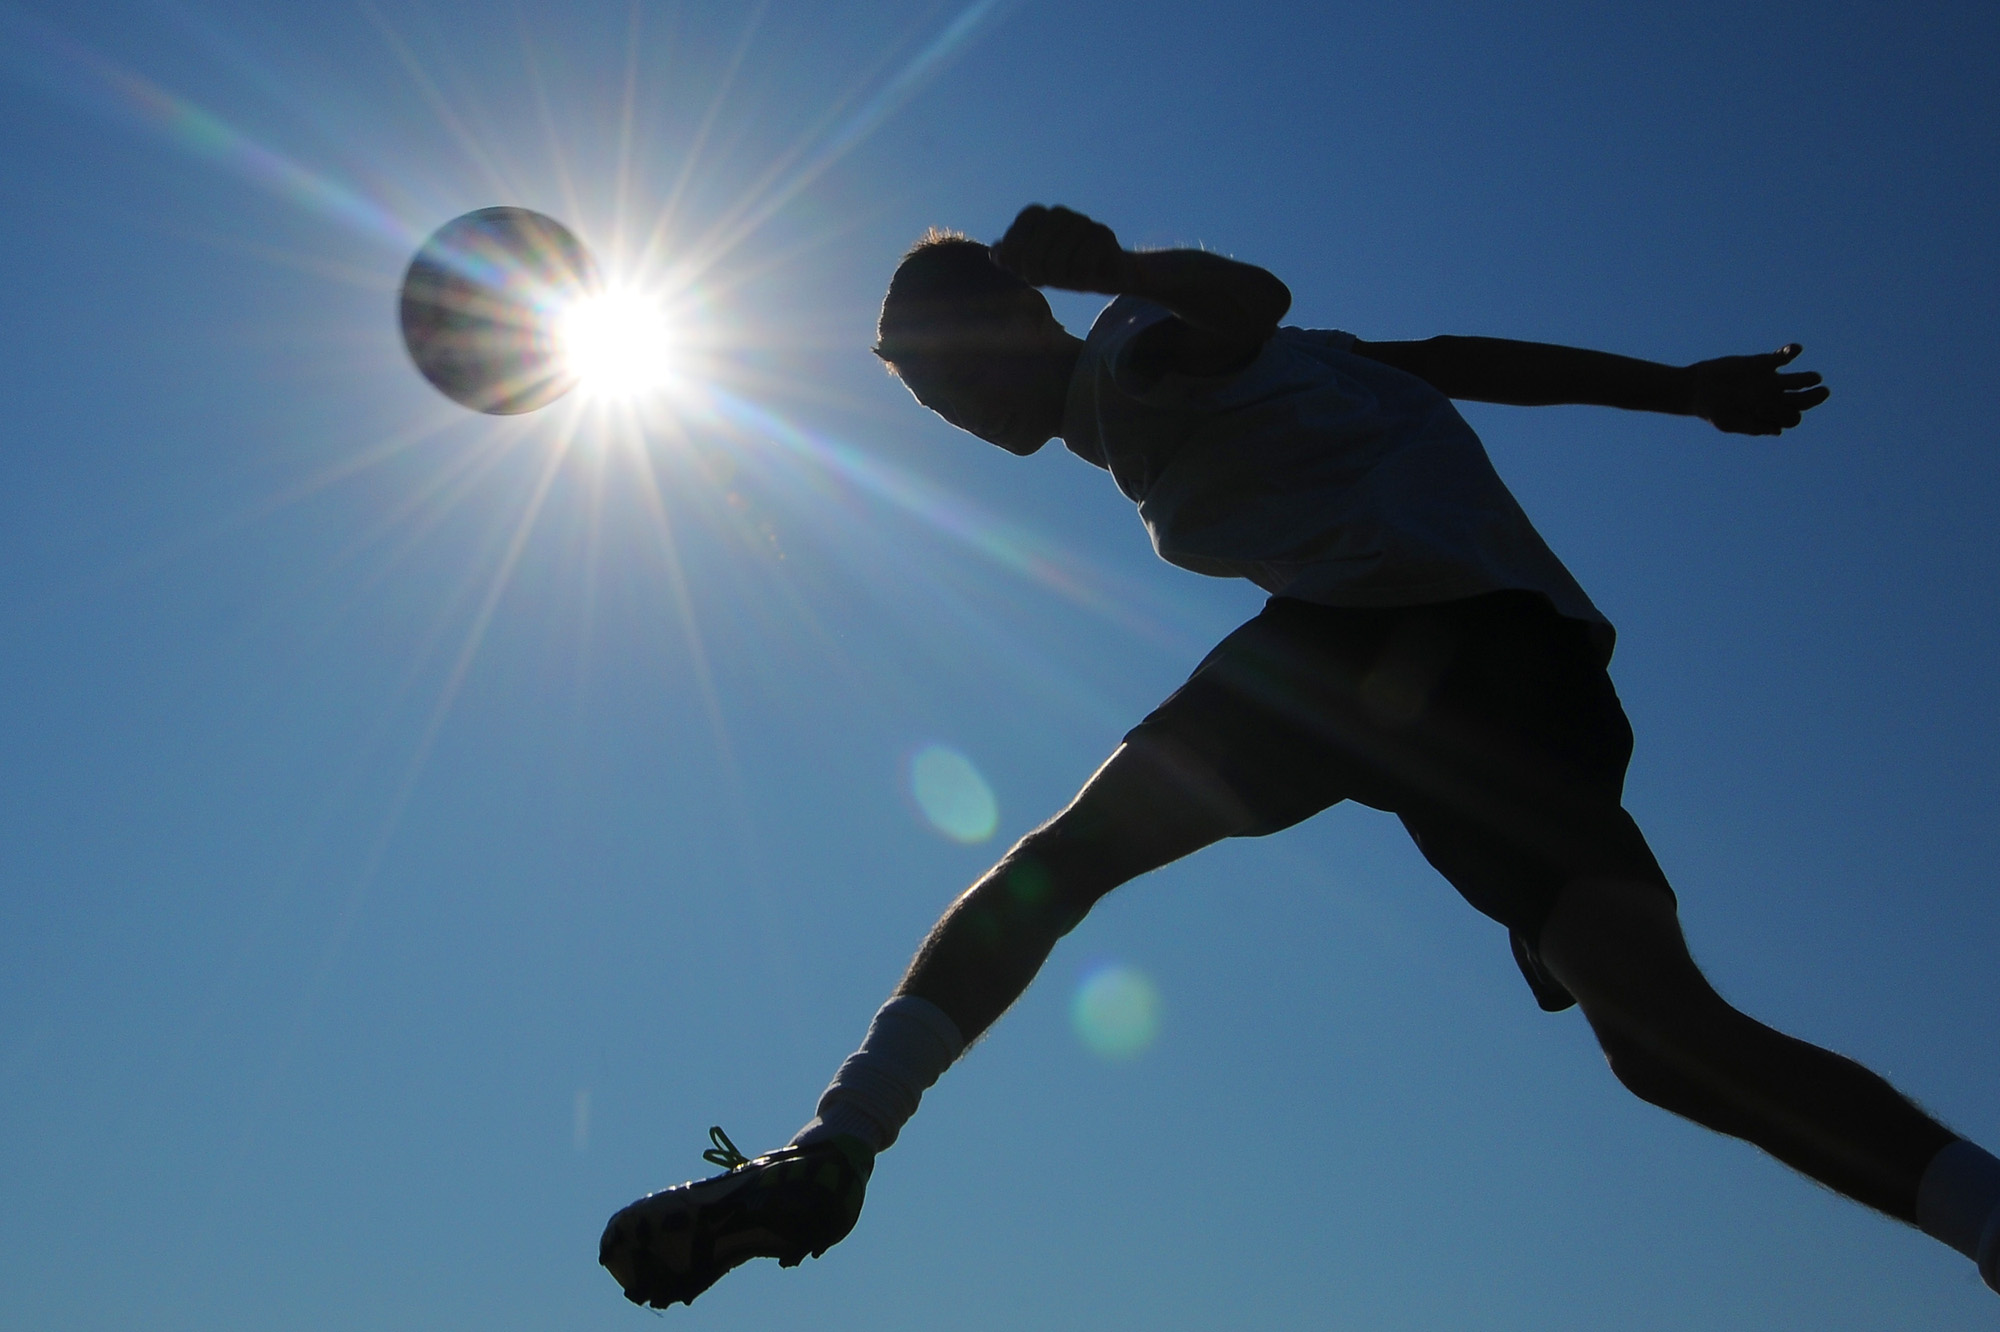 N.J. lawmaker: Student athletes shouldn't have to suffer from heat stroke. Here's what we can do about it.